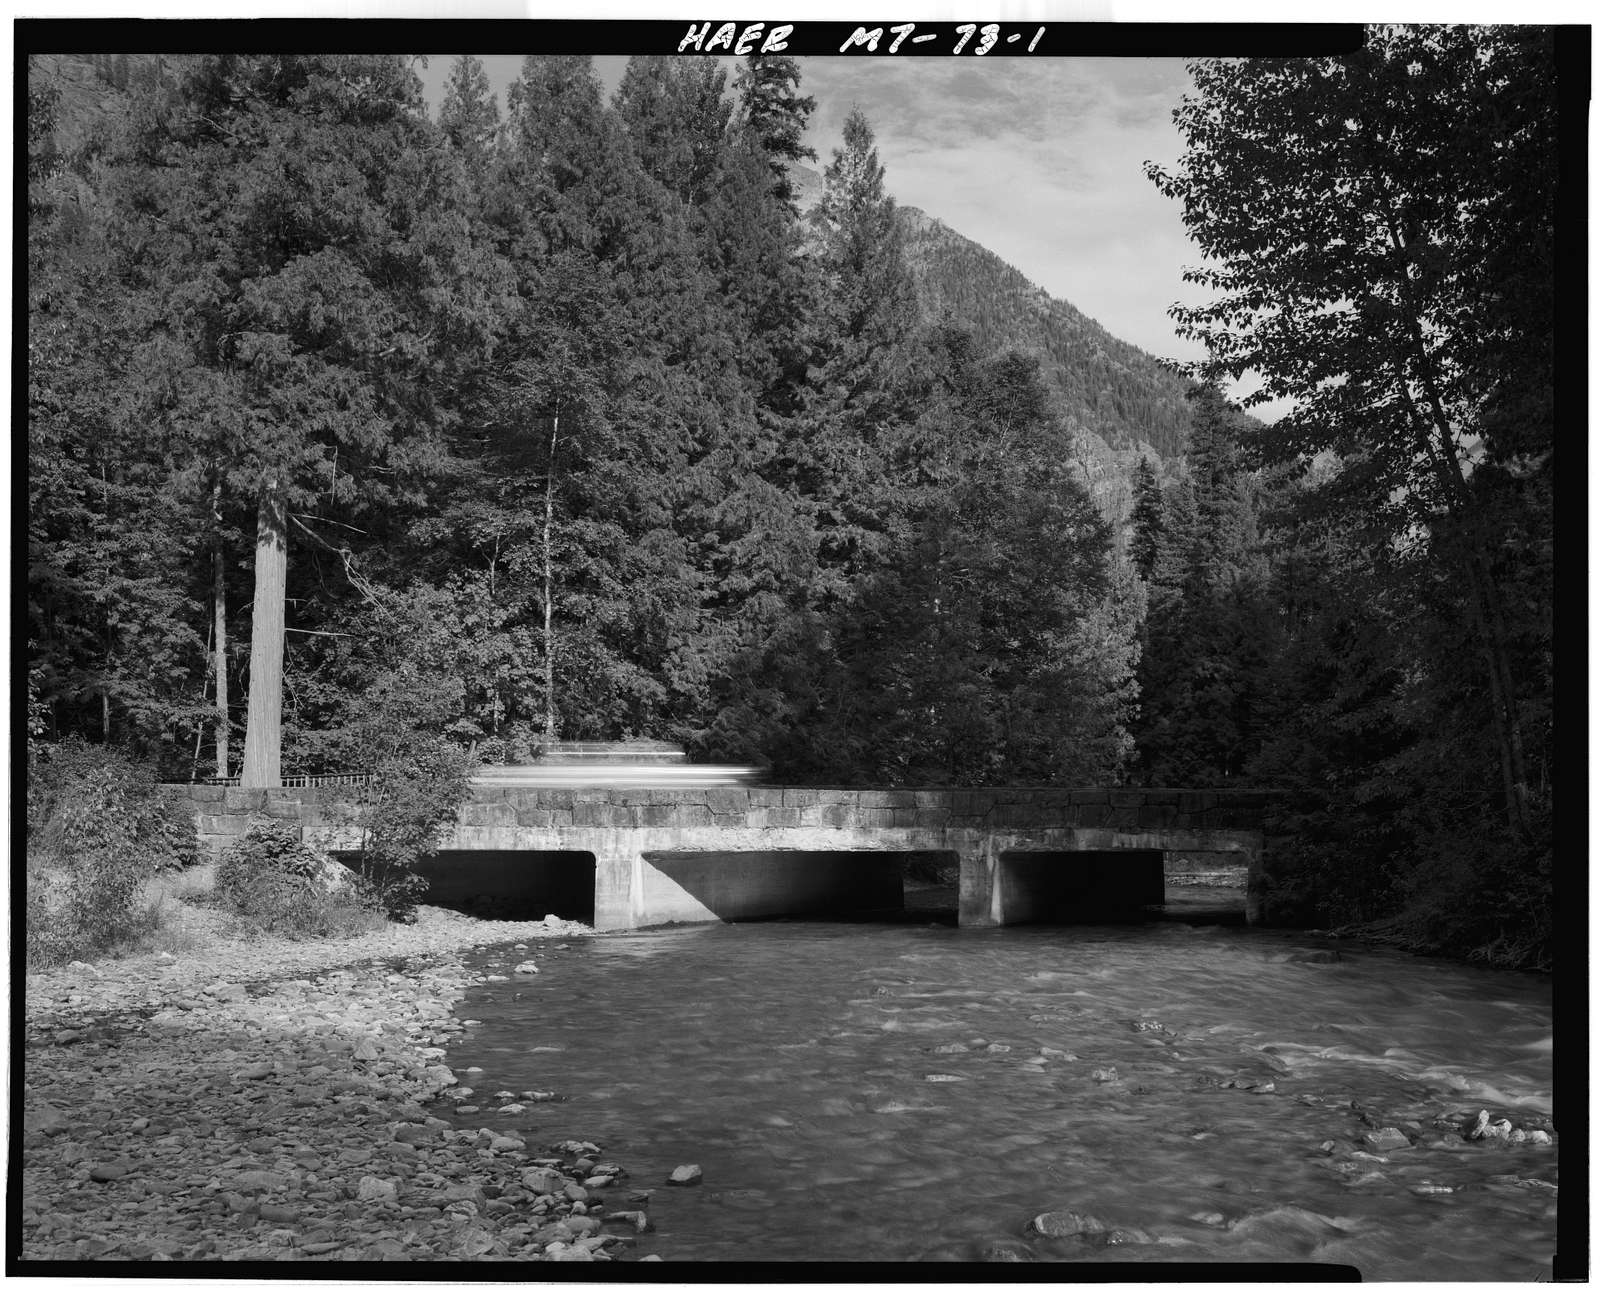 Avalanche Creek Bridge, Spanning Avalanche Creek at Going-to-the-Sun Road, West Glacier, Flathead County, MT